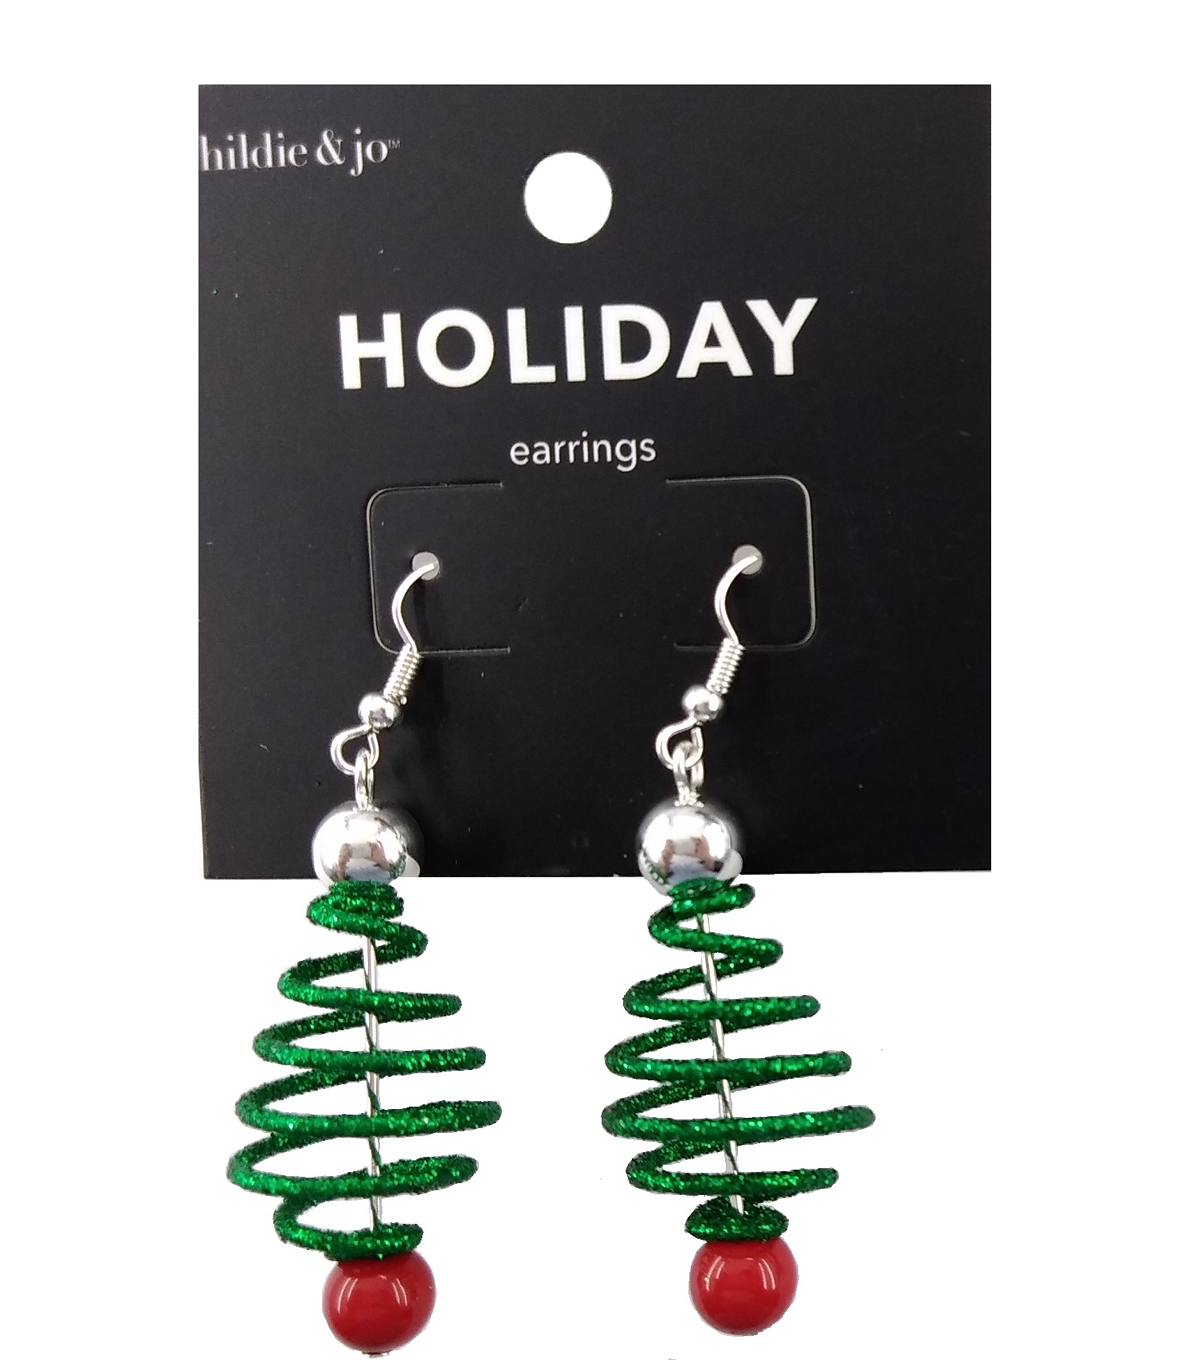 hildie & jo Holiday Earrings-Green Spiral Tree